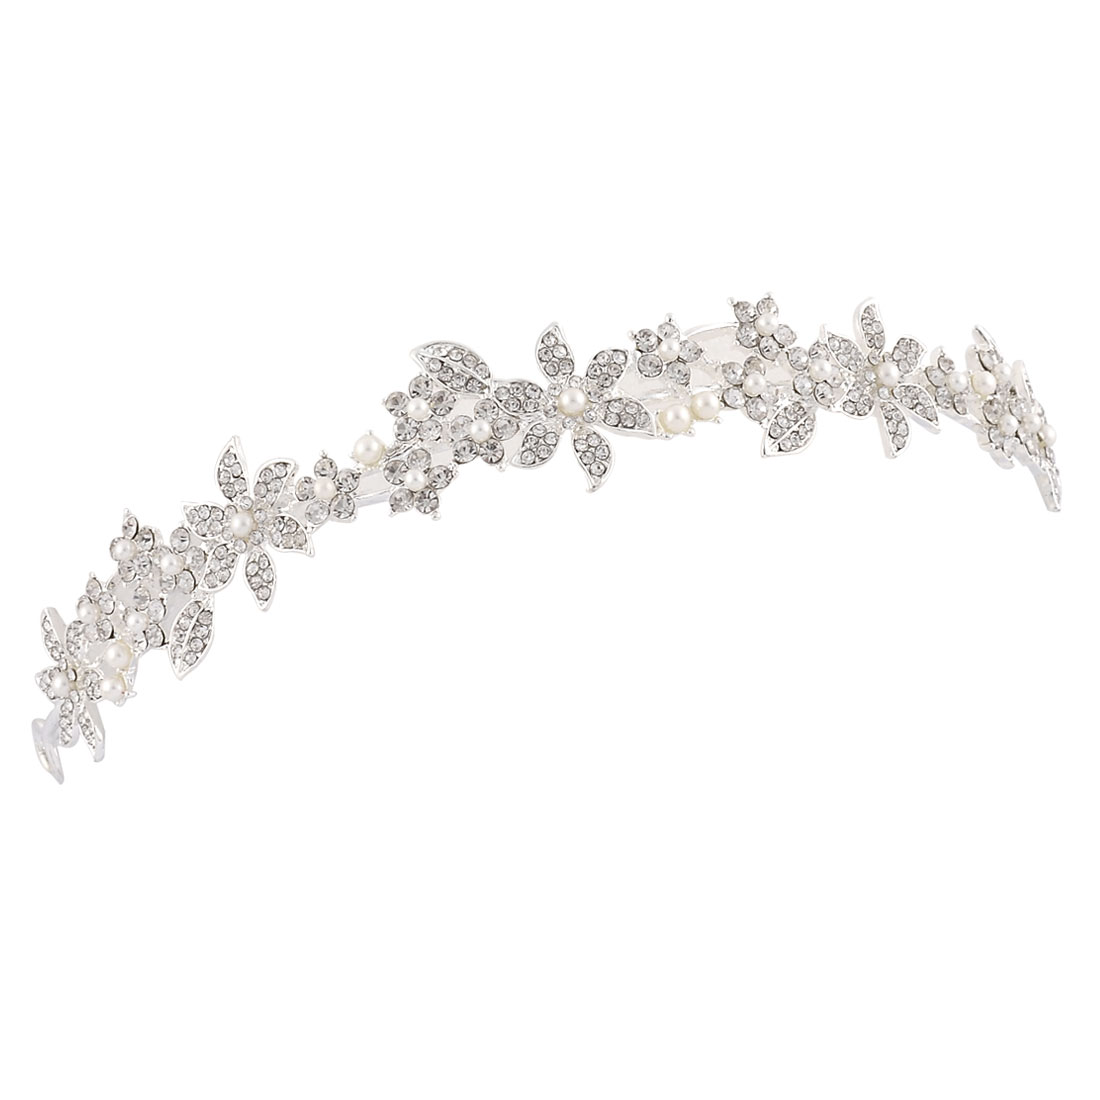 Wedding Bride Lady Simulated Imitation Pearl Detail Rhinestone Inlaid Tiara Headpiece Headband